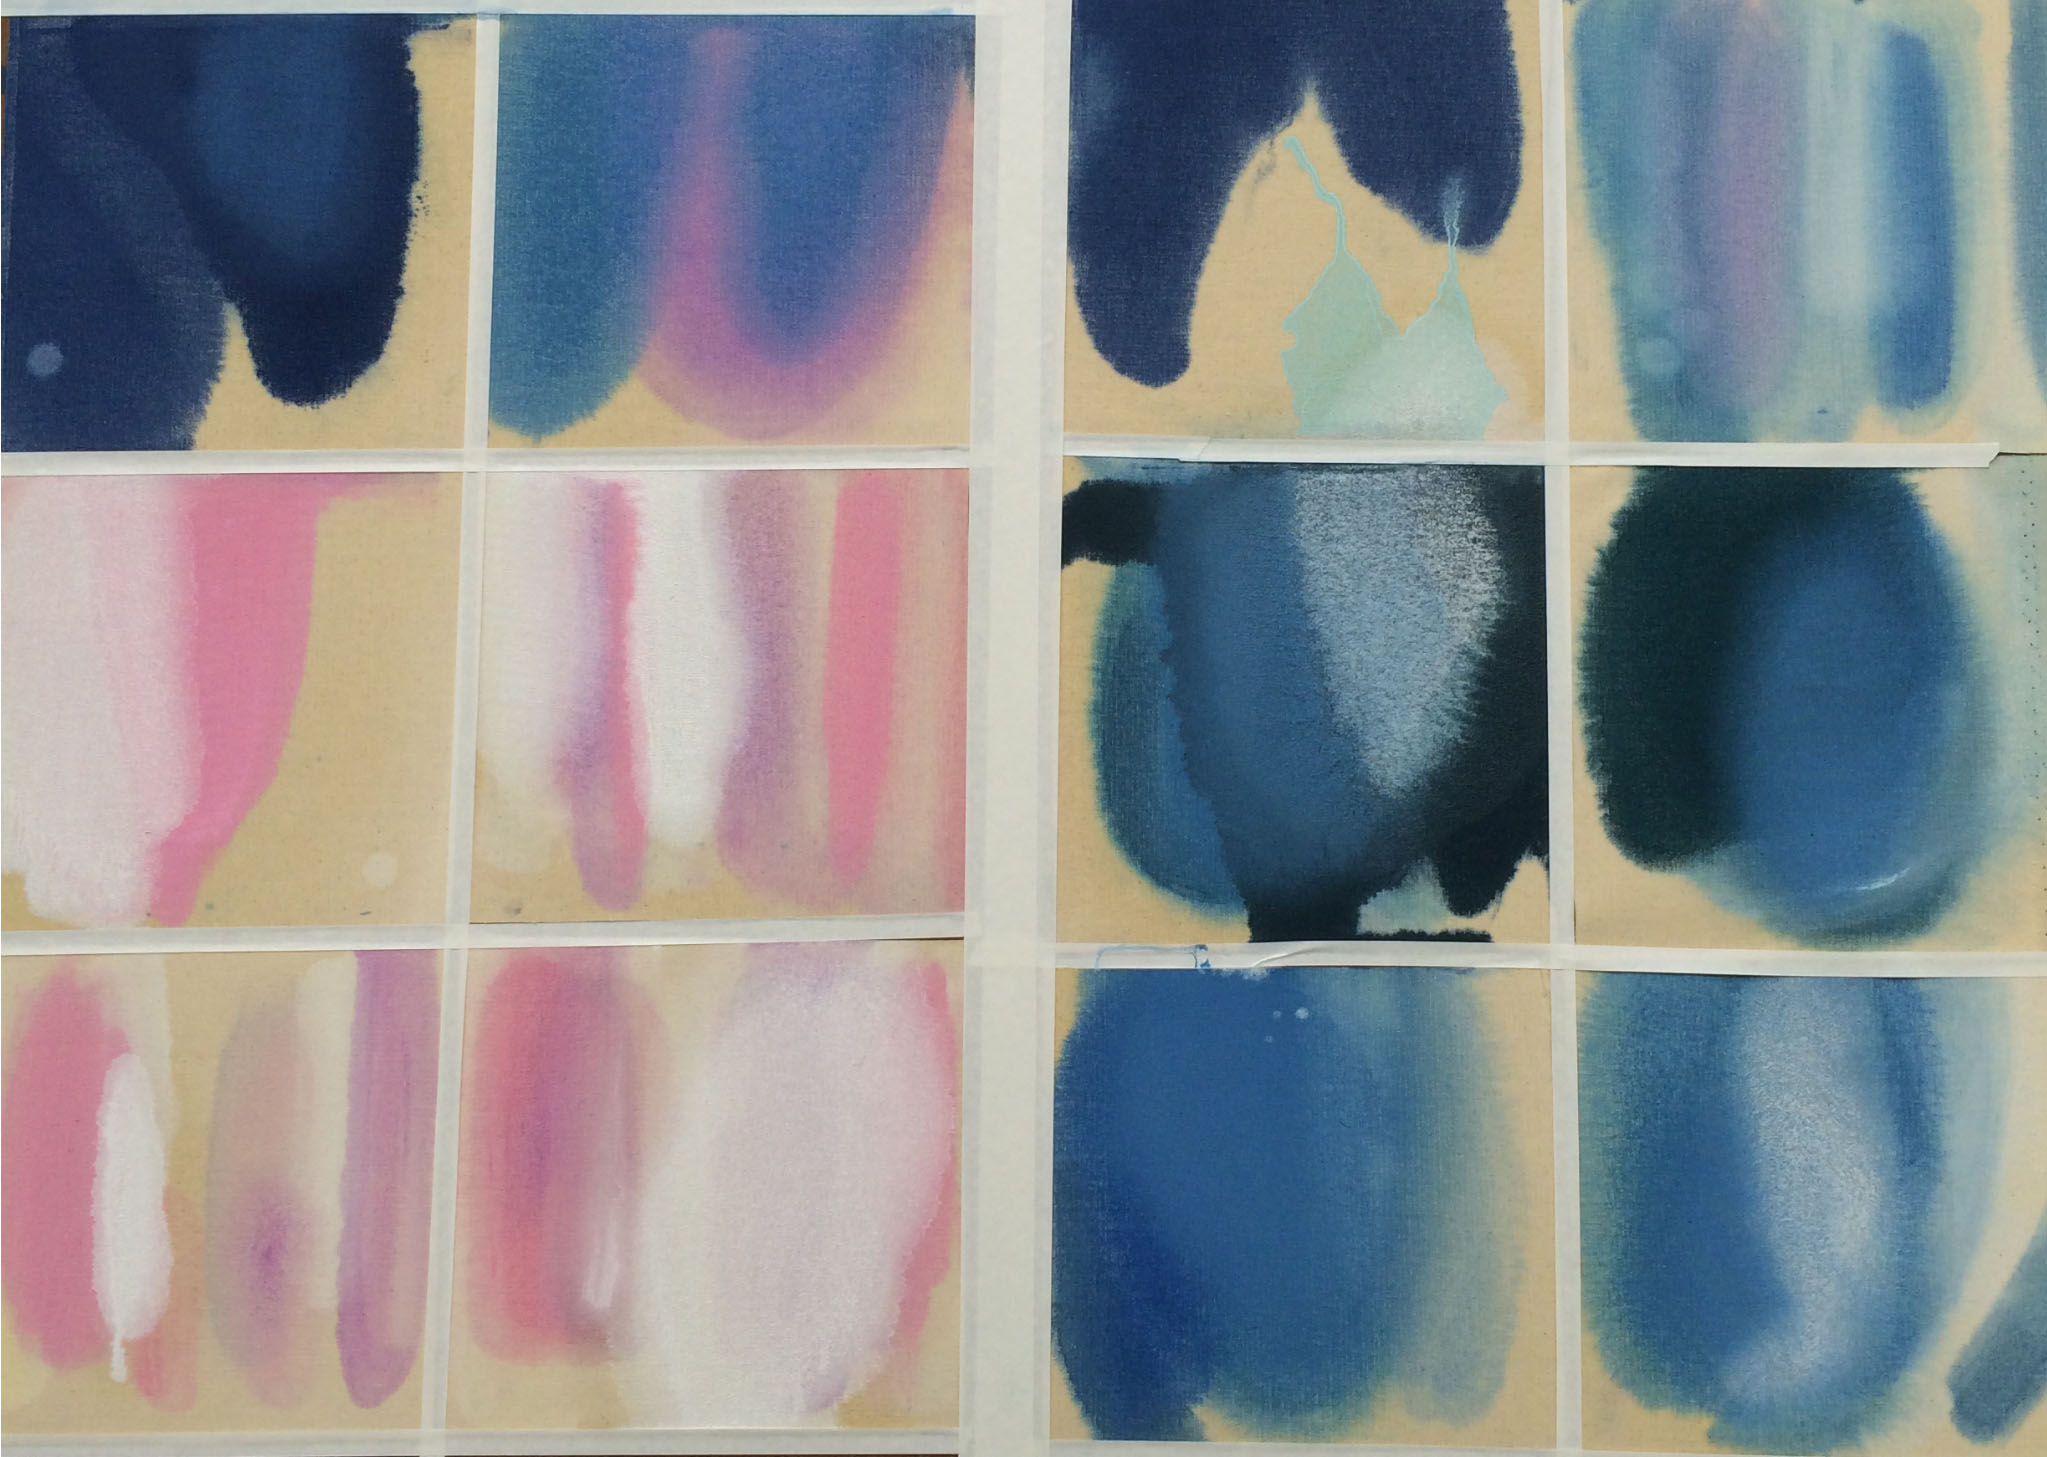 Pour Series 1 , 2014, composite of 12 studies of oil on canvas, approximately 10 x 10 inches each.